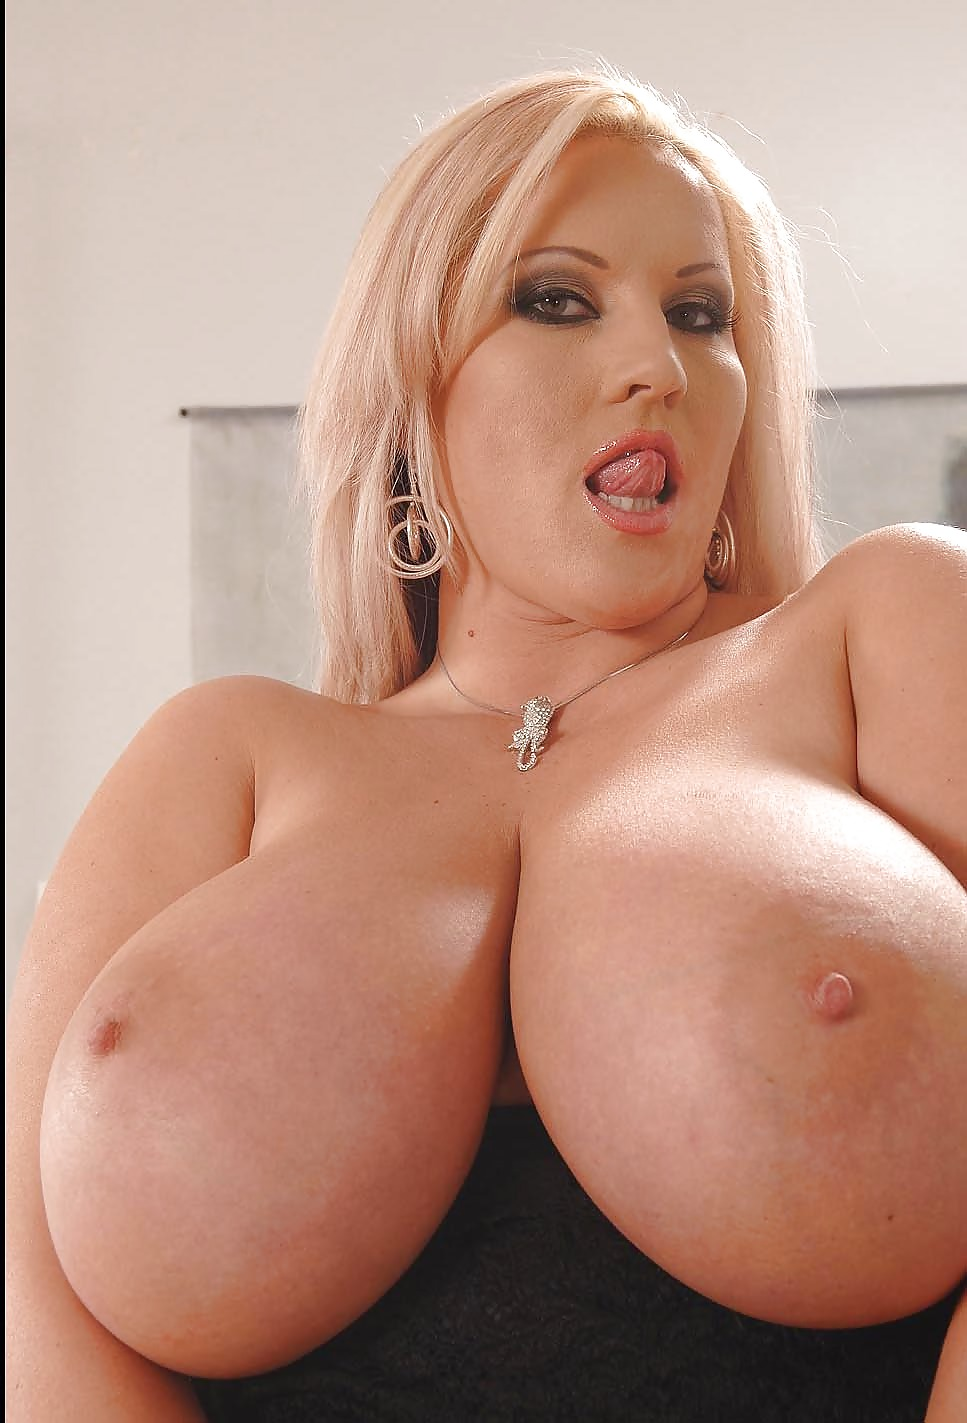 Laura Orsolya And Her Huge Tits - 60 Pics - Xhamstercom-2897